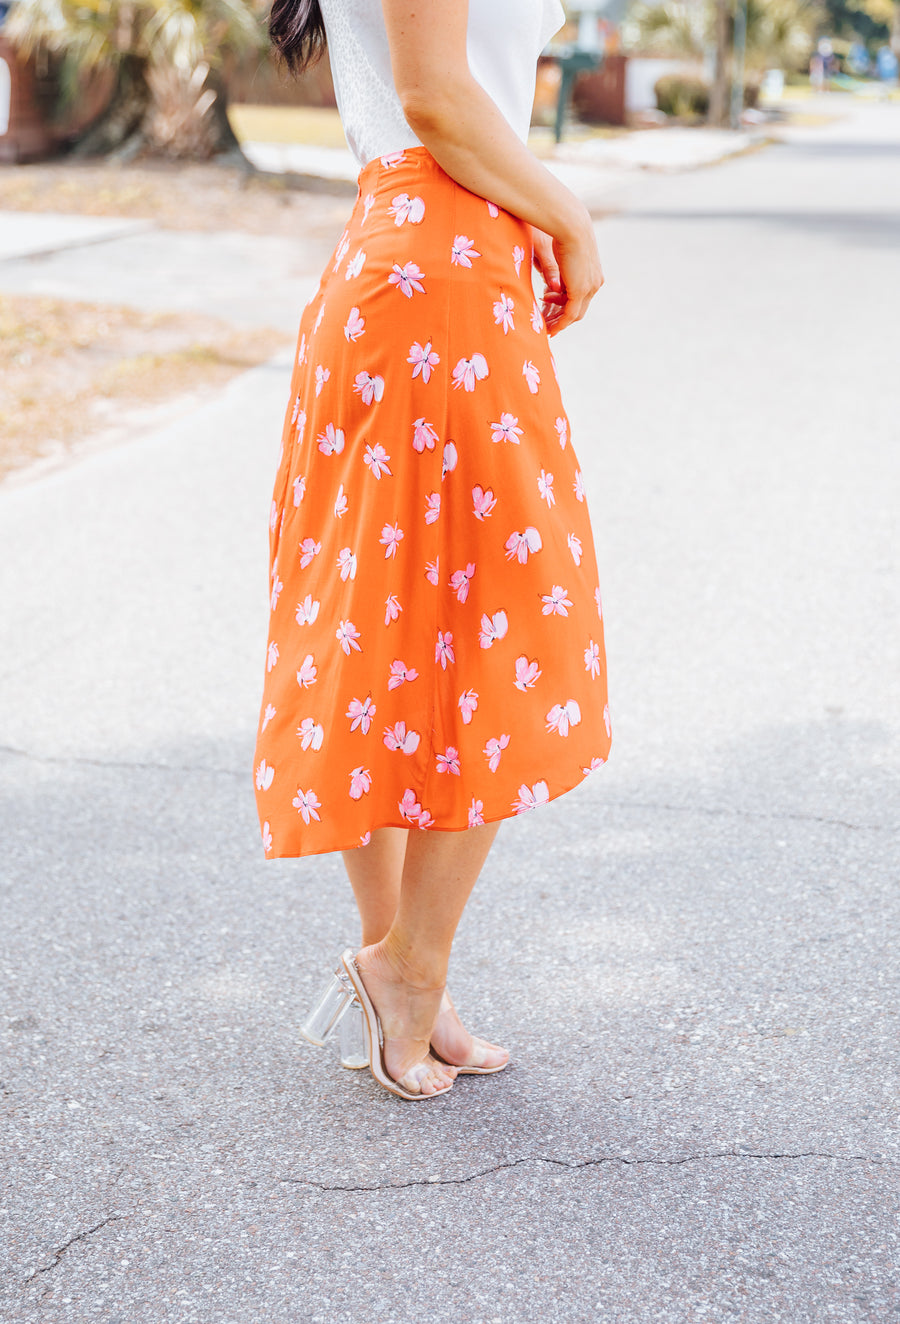 Pink floral prints cover the fabric of this lightweight tulip midi skirt. It has a fitted waistband that meets button details on the side of an asymmetrical high-low skirt hem.